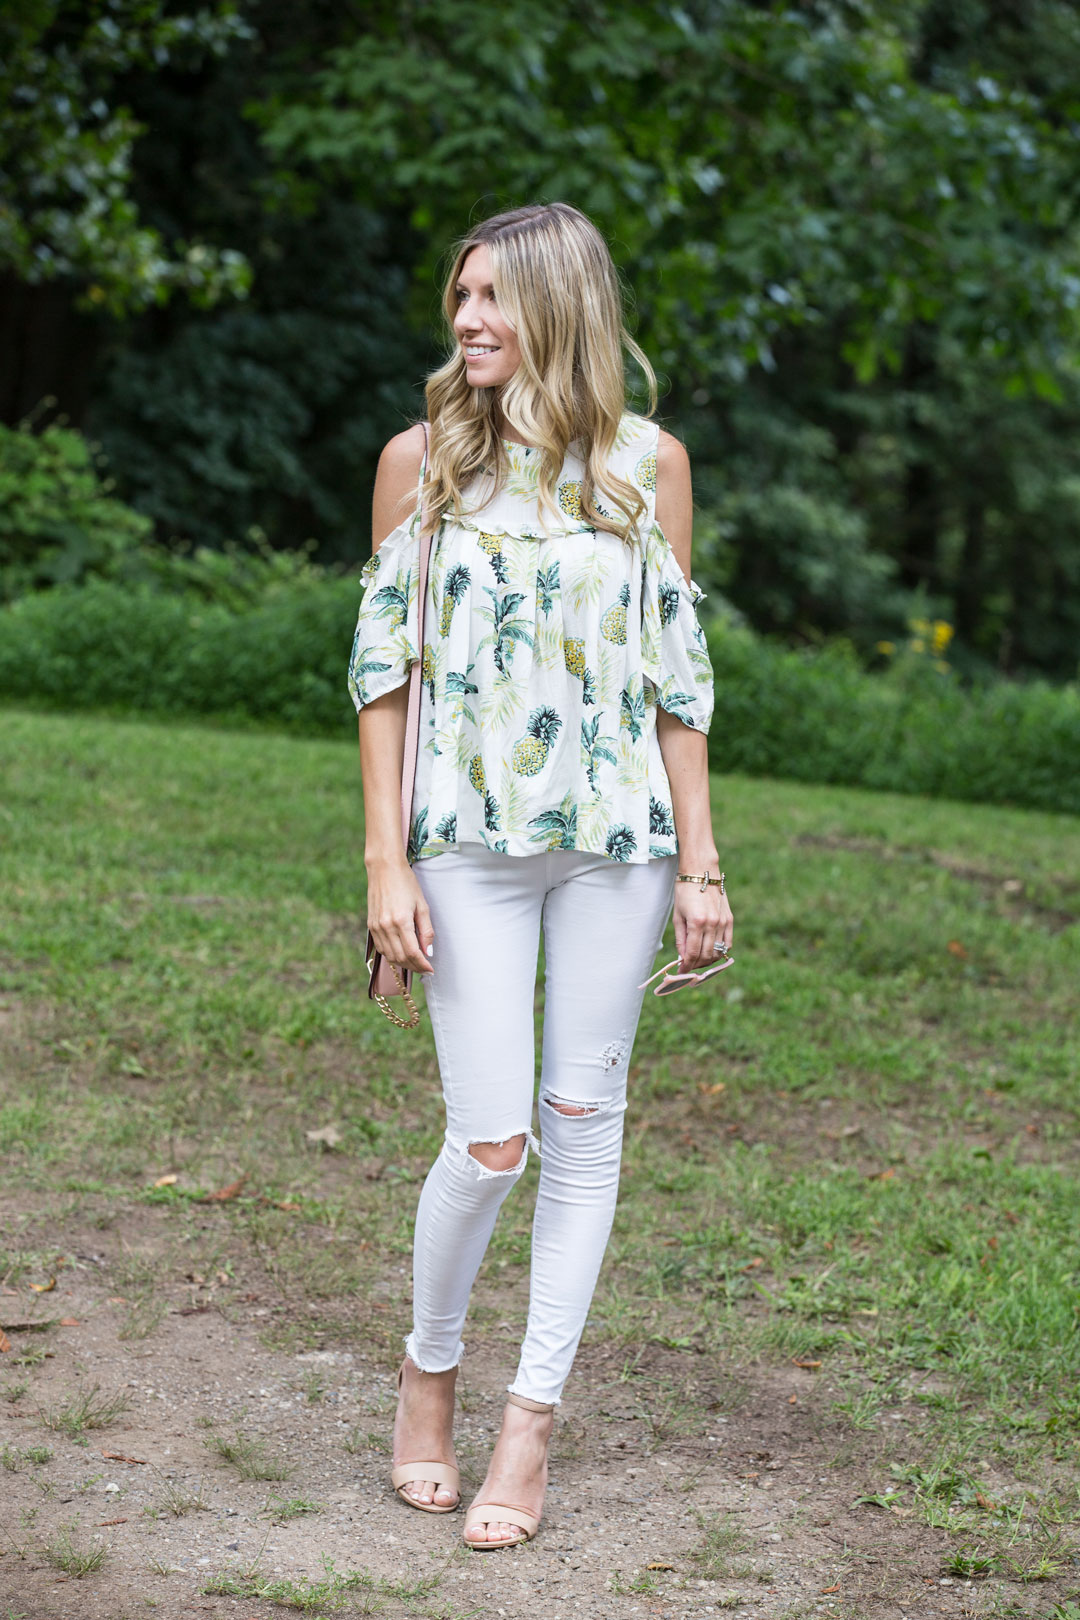 fun and flirty outfit for a summer day